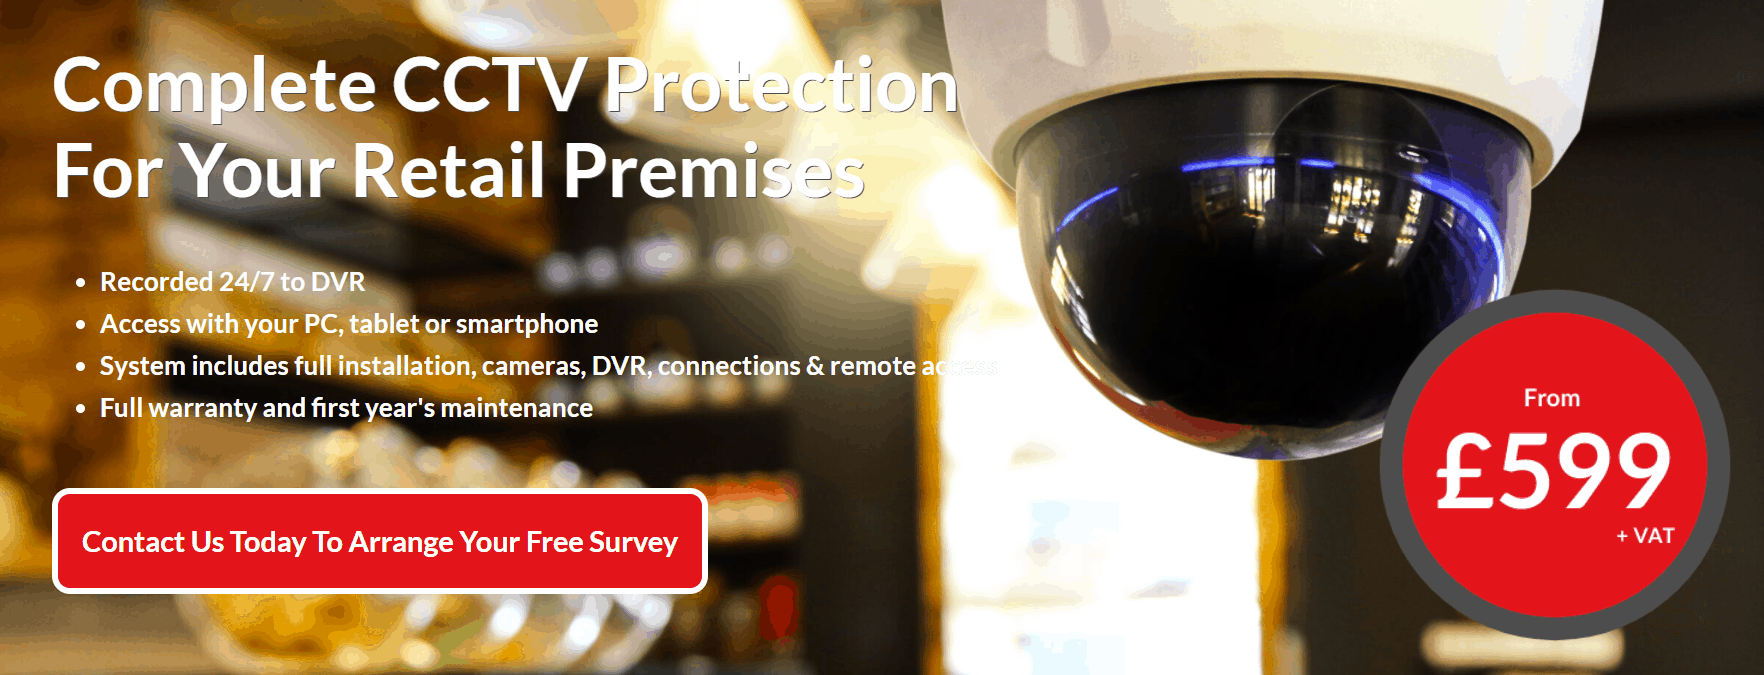 CCTV for Retail for Mobile